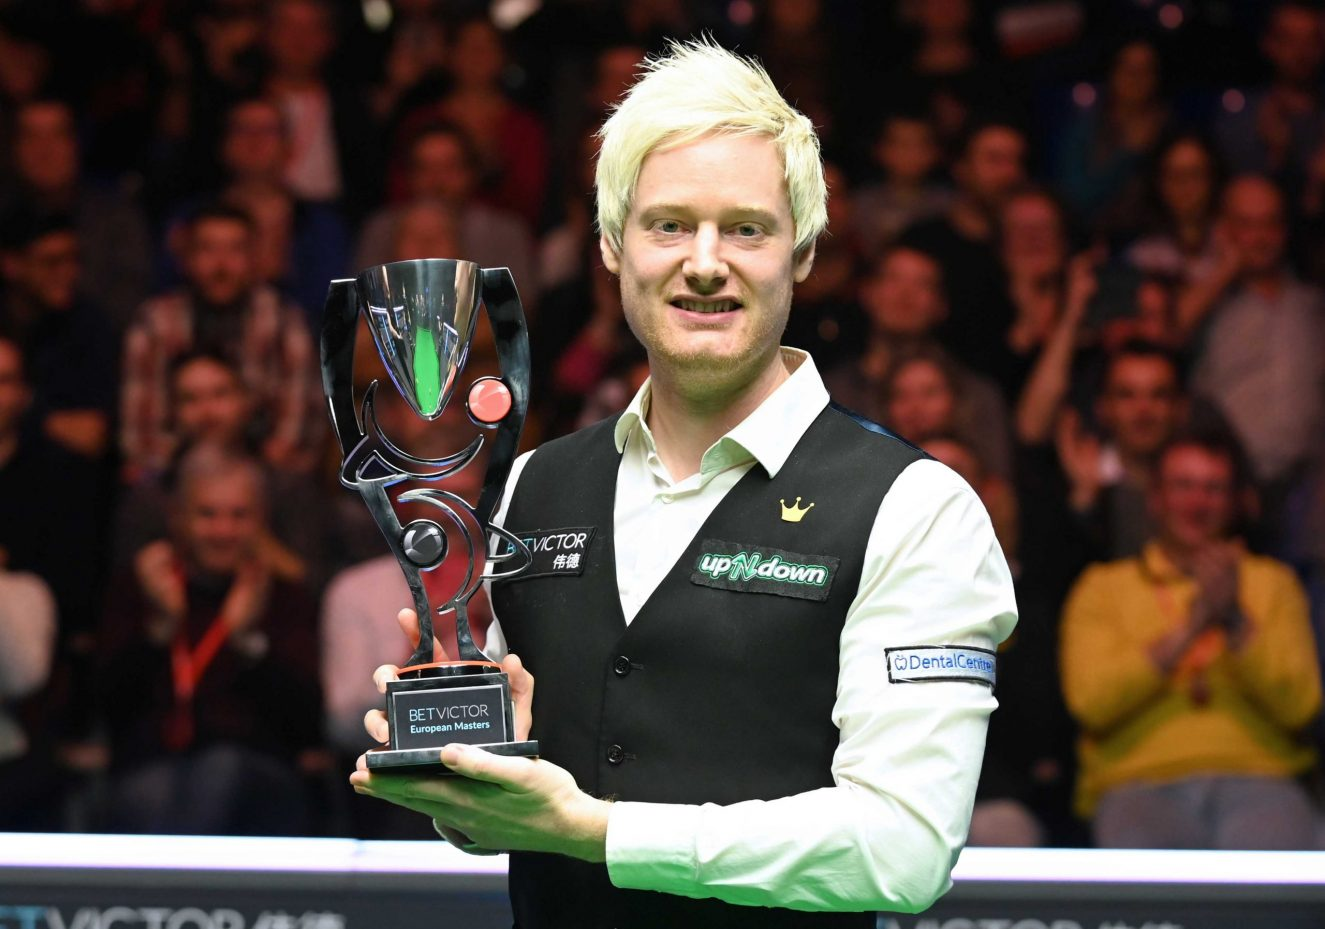 European Masters Snooker 2020 Draw, Live Scores and Schedule of Play